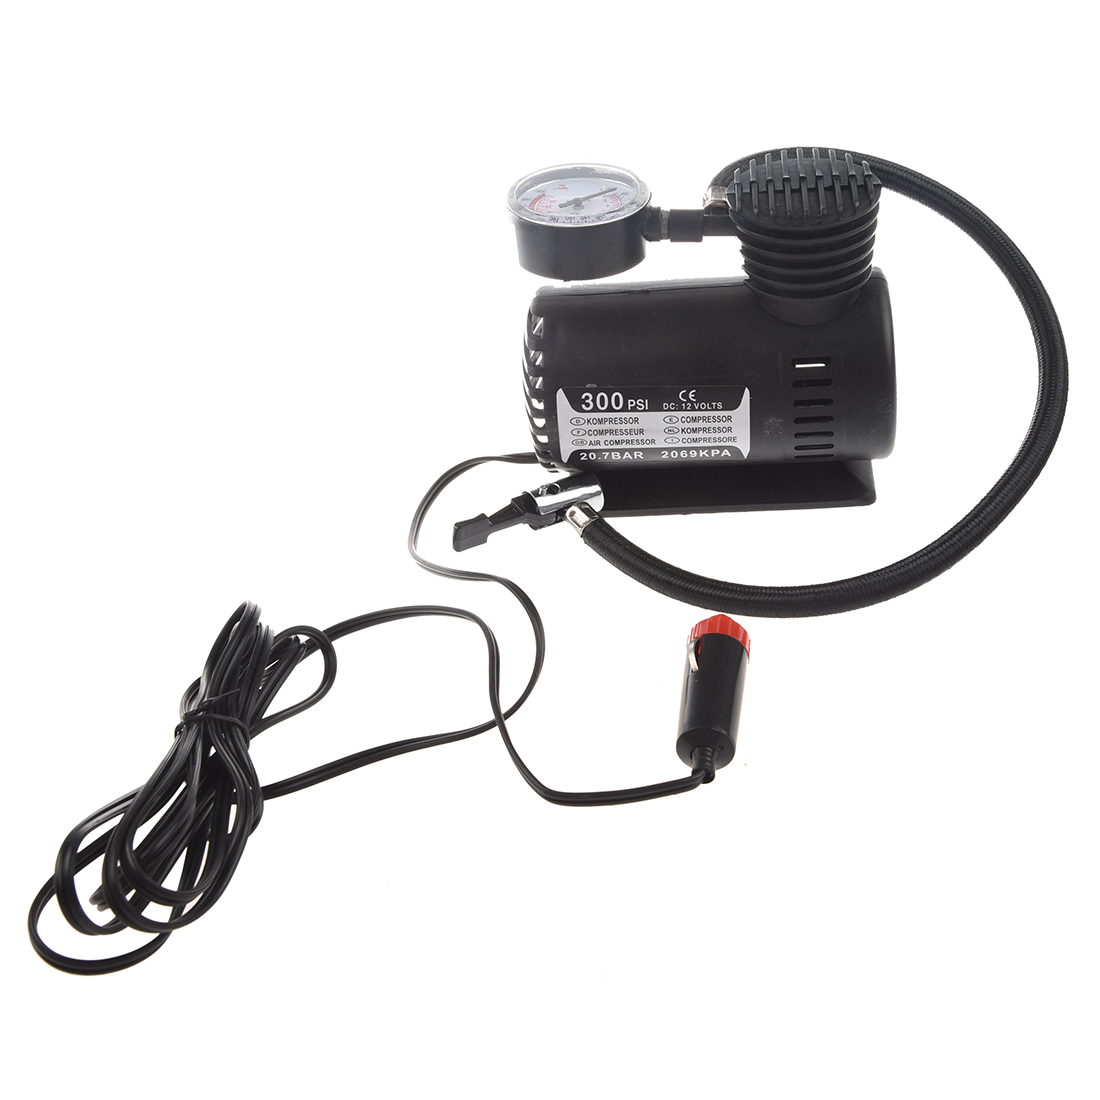 12V Car Auto Electric Pump Air Compressor Portable Tire Inflator 300PSI K590 new arrival 12v 4800pa ac car electric air pump for camping airbed boat toy inflator